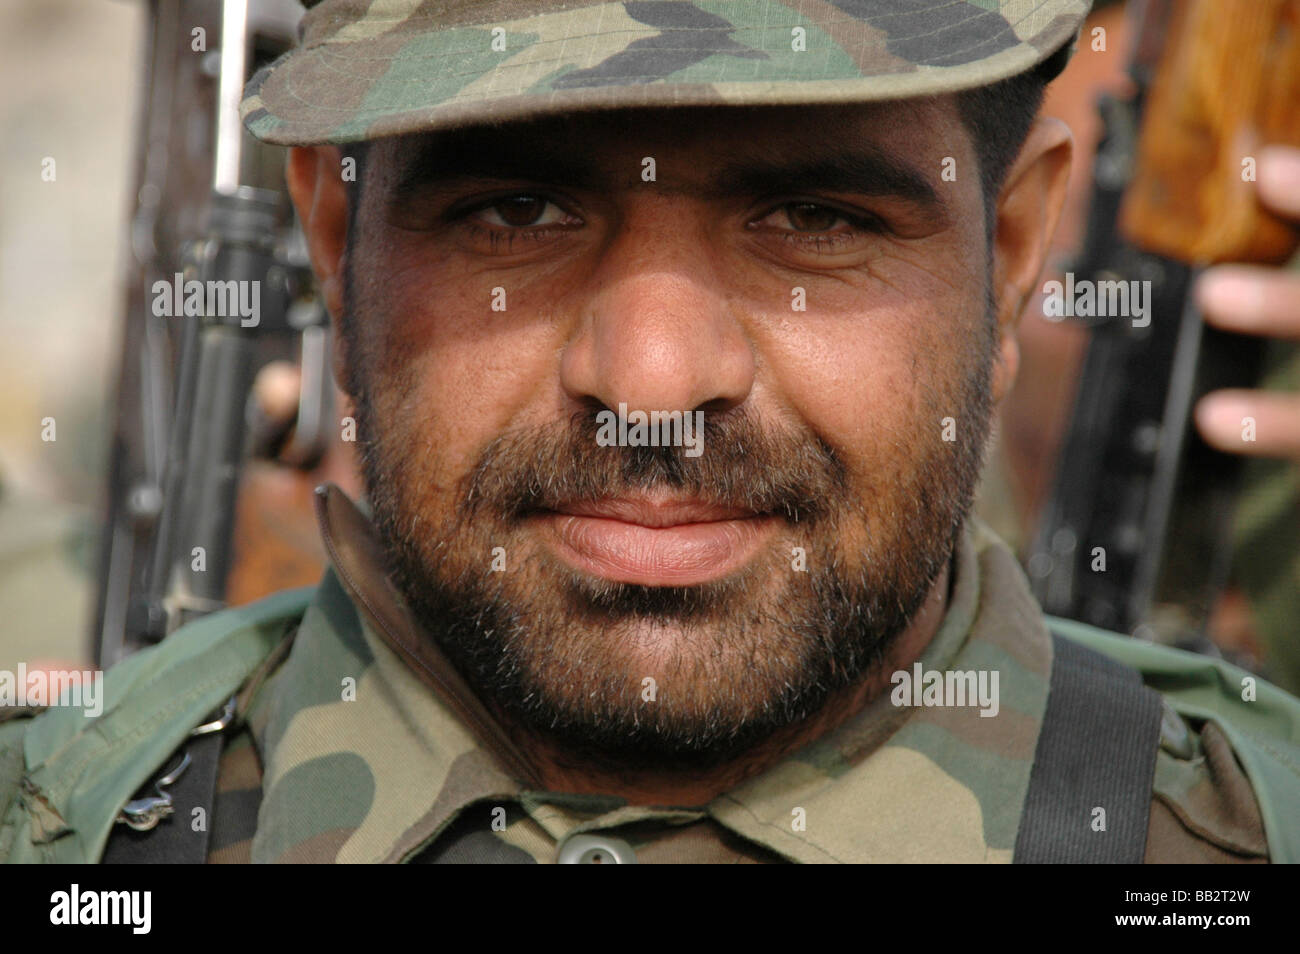 Portrait of an Afghan National Army (ANA) recruit in basic training at the Kabul Military Training Centre, Afghanistan. - Stock Image